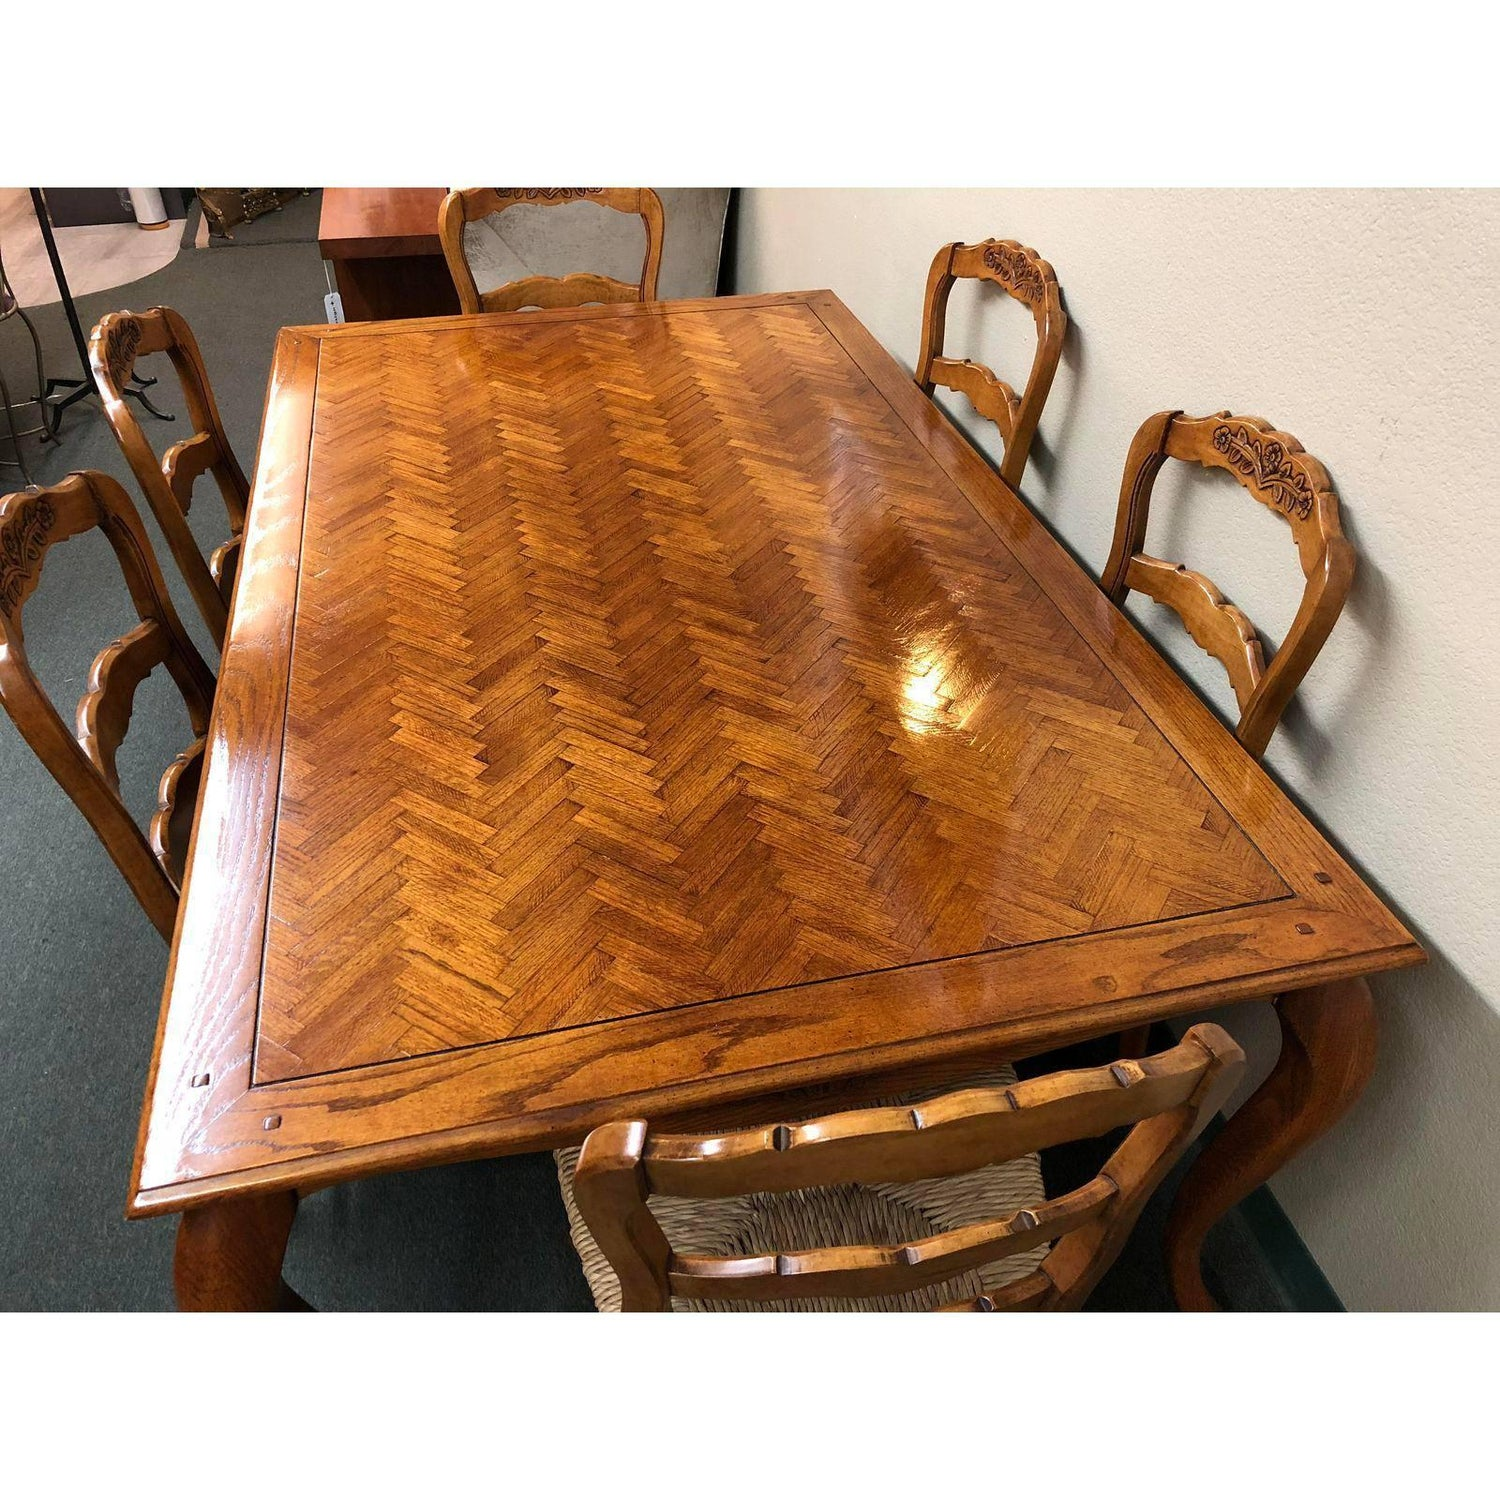 Fremarc Designs Chateau Country Dining Table With Six Chairs For - Fremarc dining table